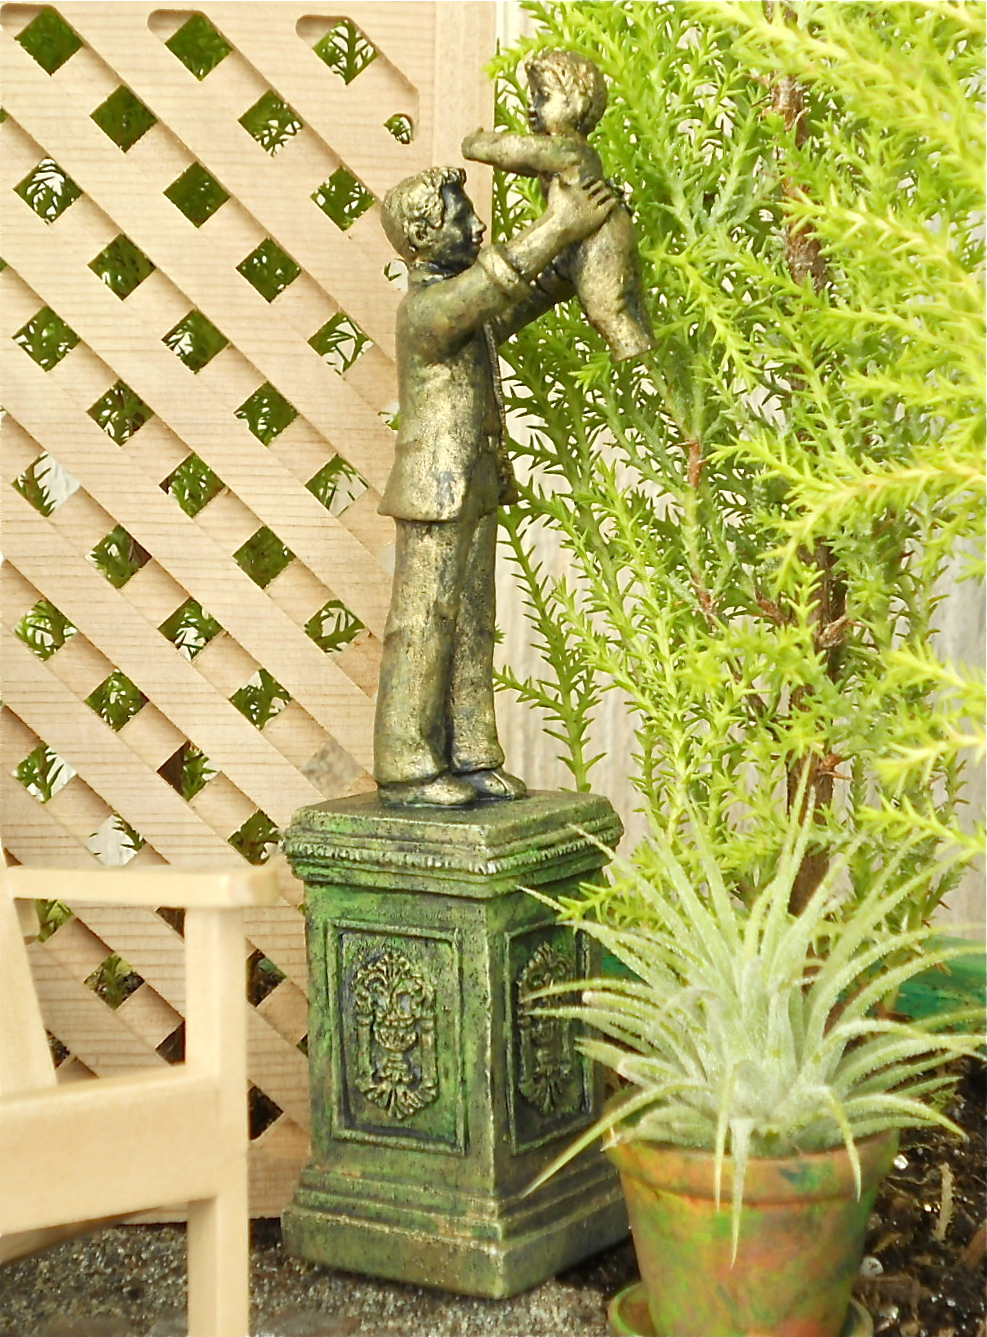 Miniature Garden Art: Good Dads are too few and should be on a pedestal too.